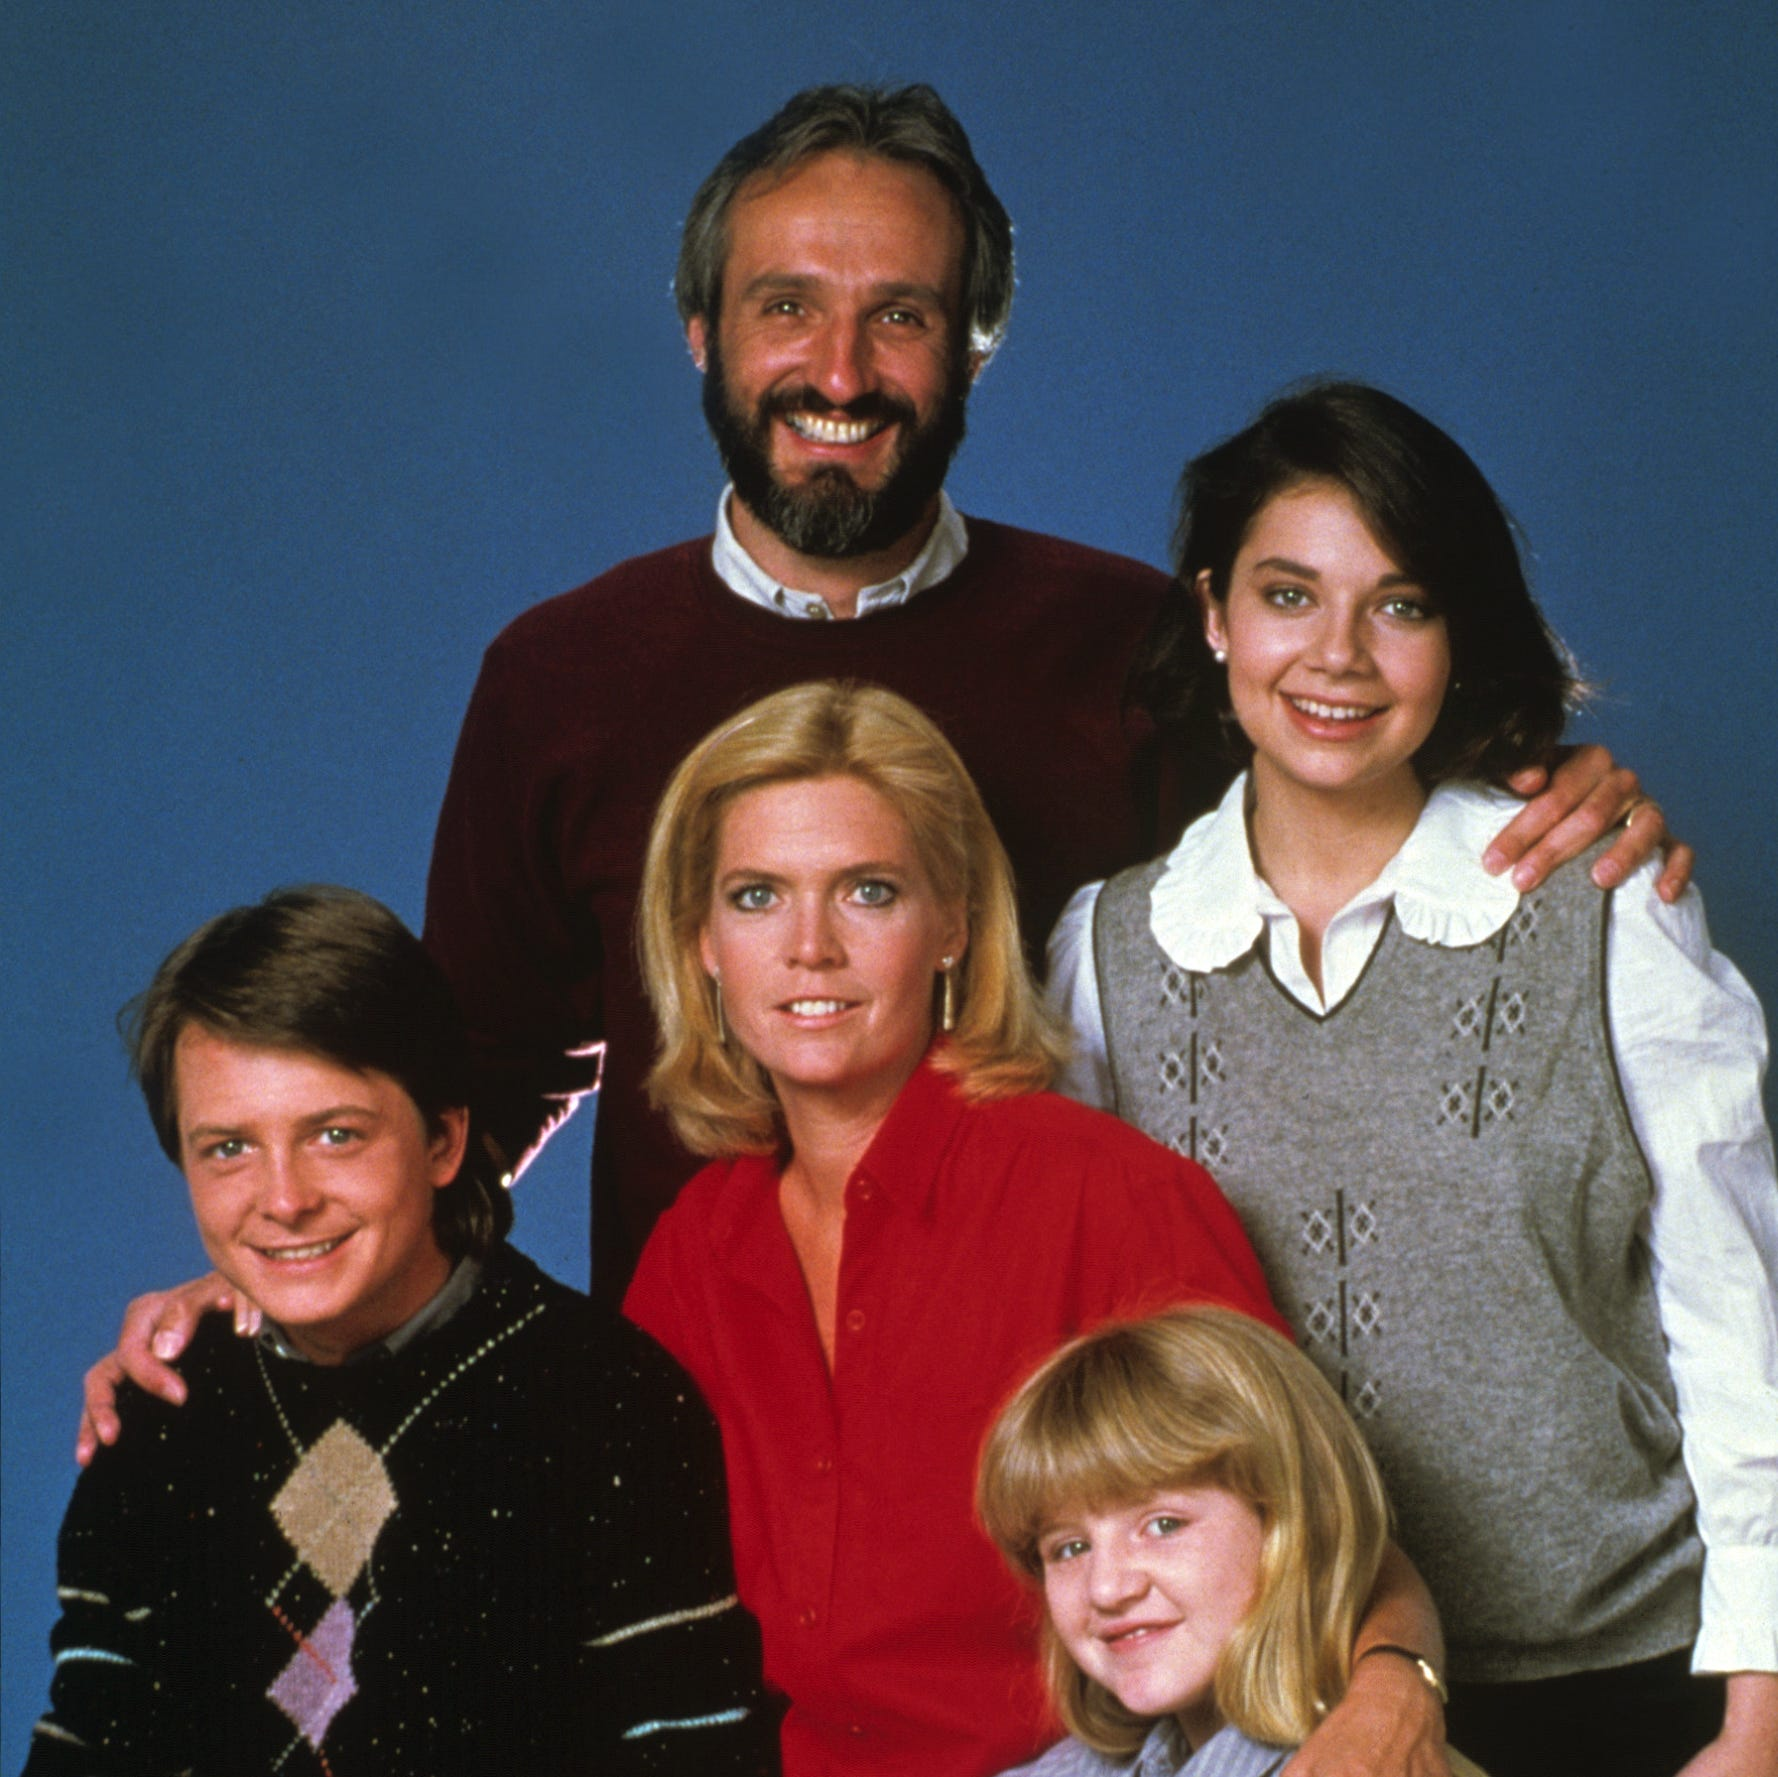 'Family Ties' reunion: Meredith Baxter, Michael Gross in 'Love Letters' in Rehoboth Beach